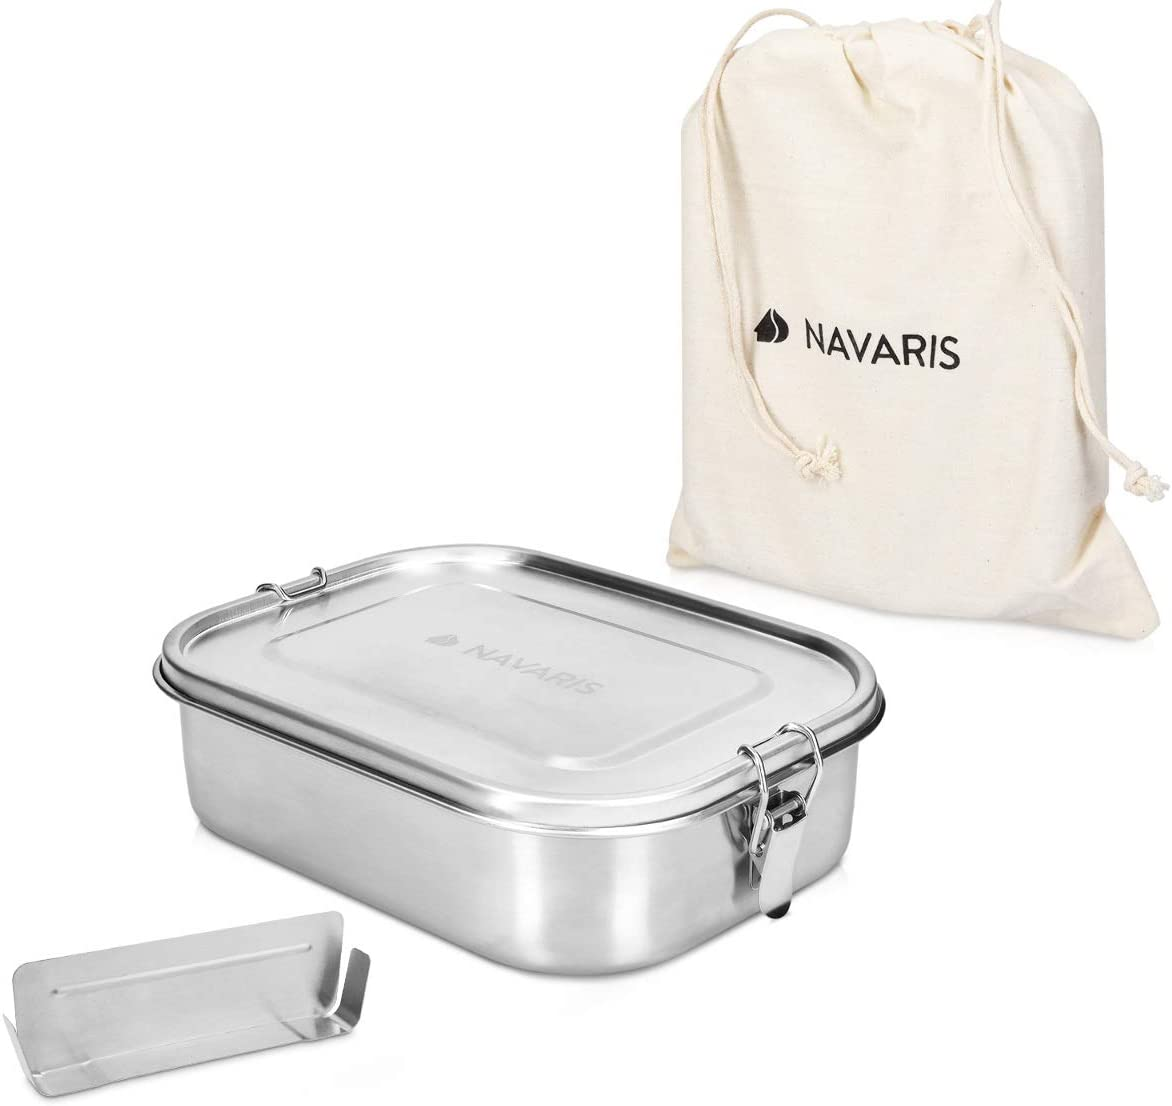 Navaris Fiambrera de Acero Inoxidable para Comida - Envase hermético con Separador y Tapa - Recipiente Rectangular de 1400 ML - Lunch Box de Metal